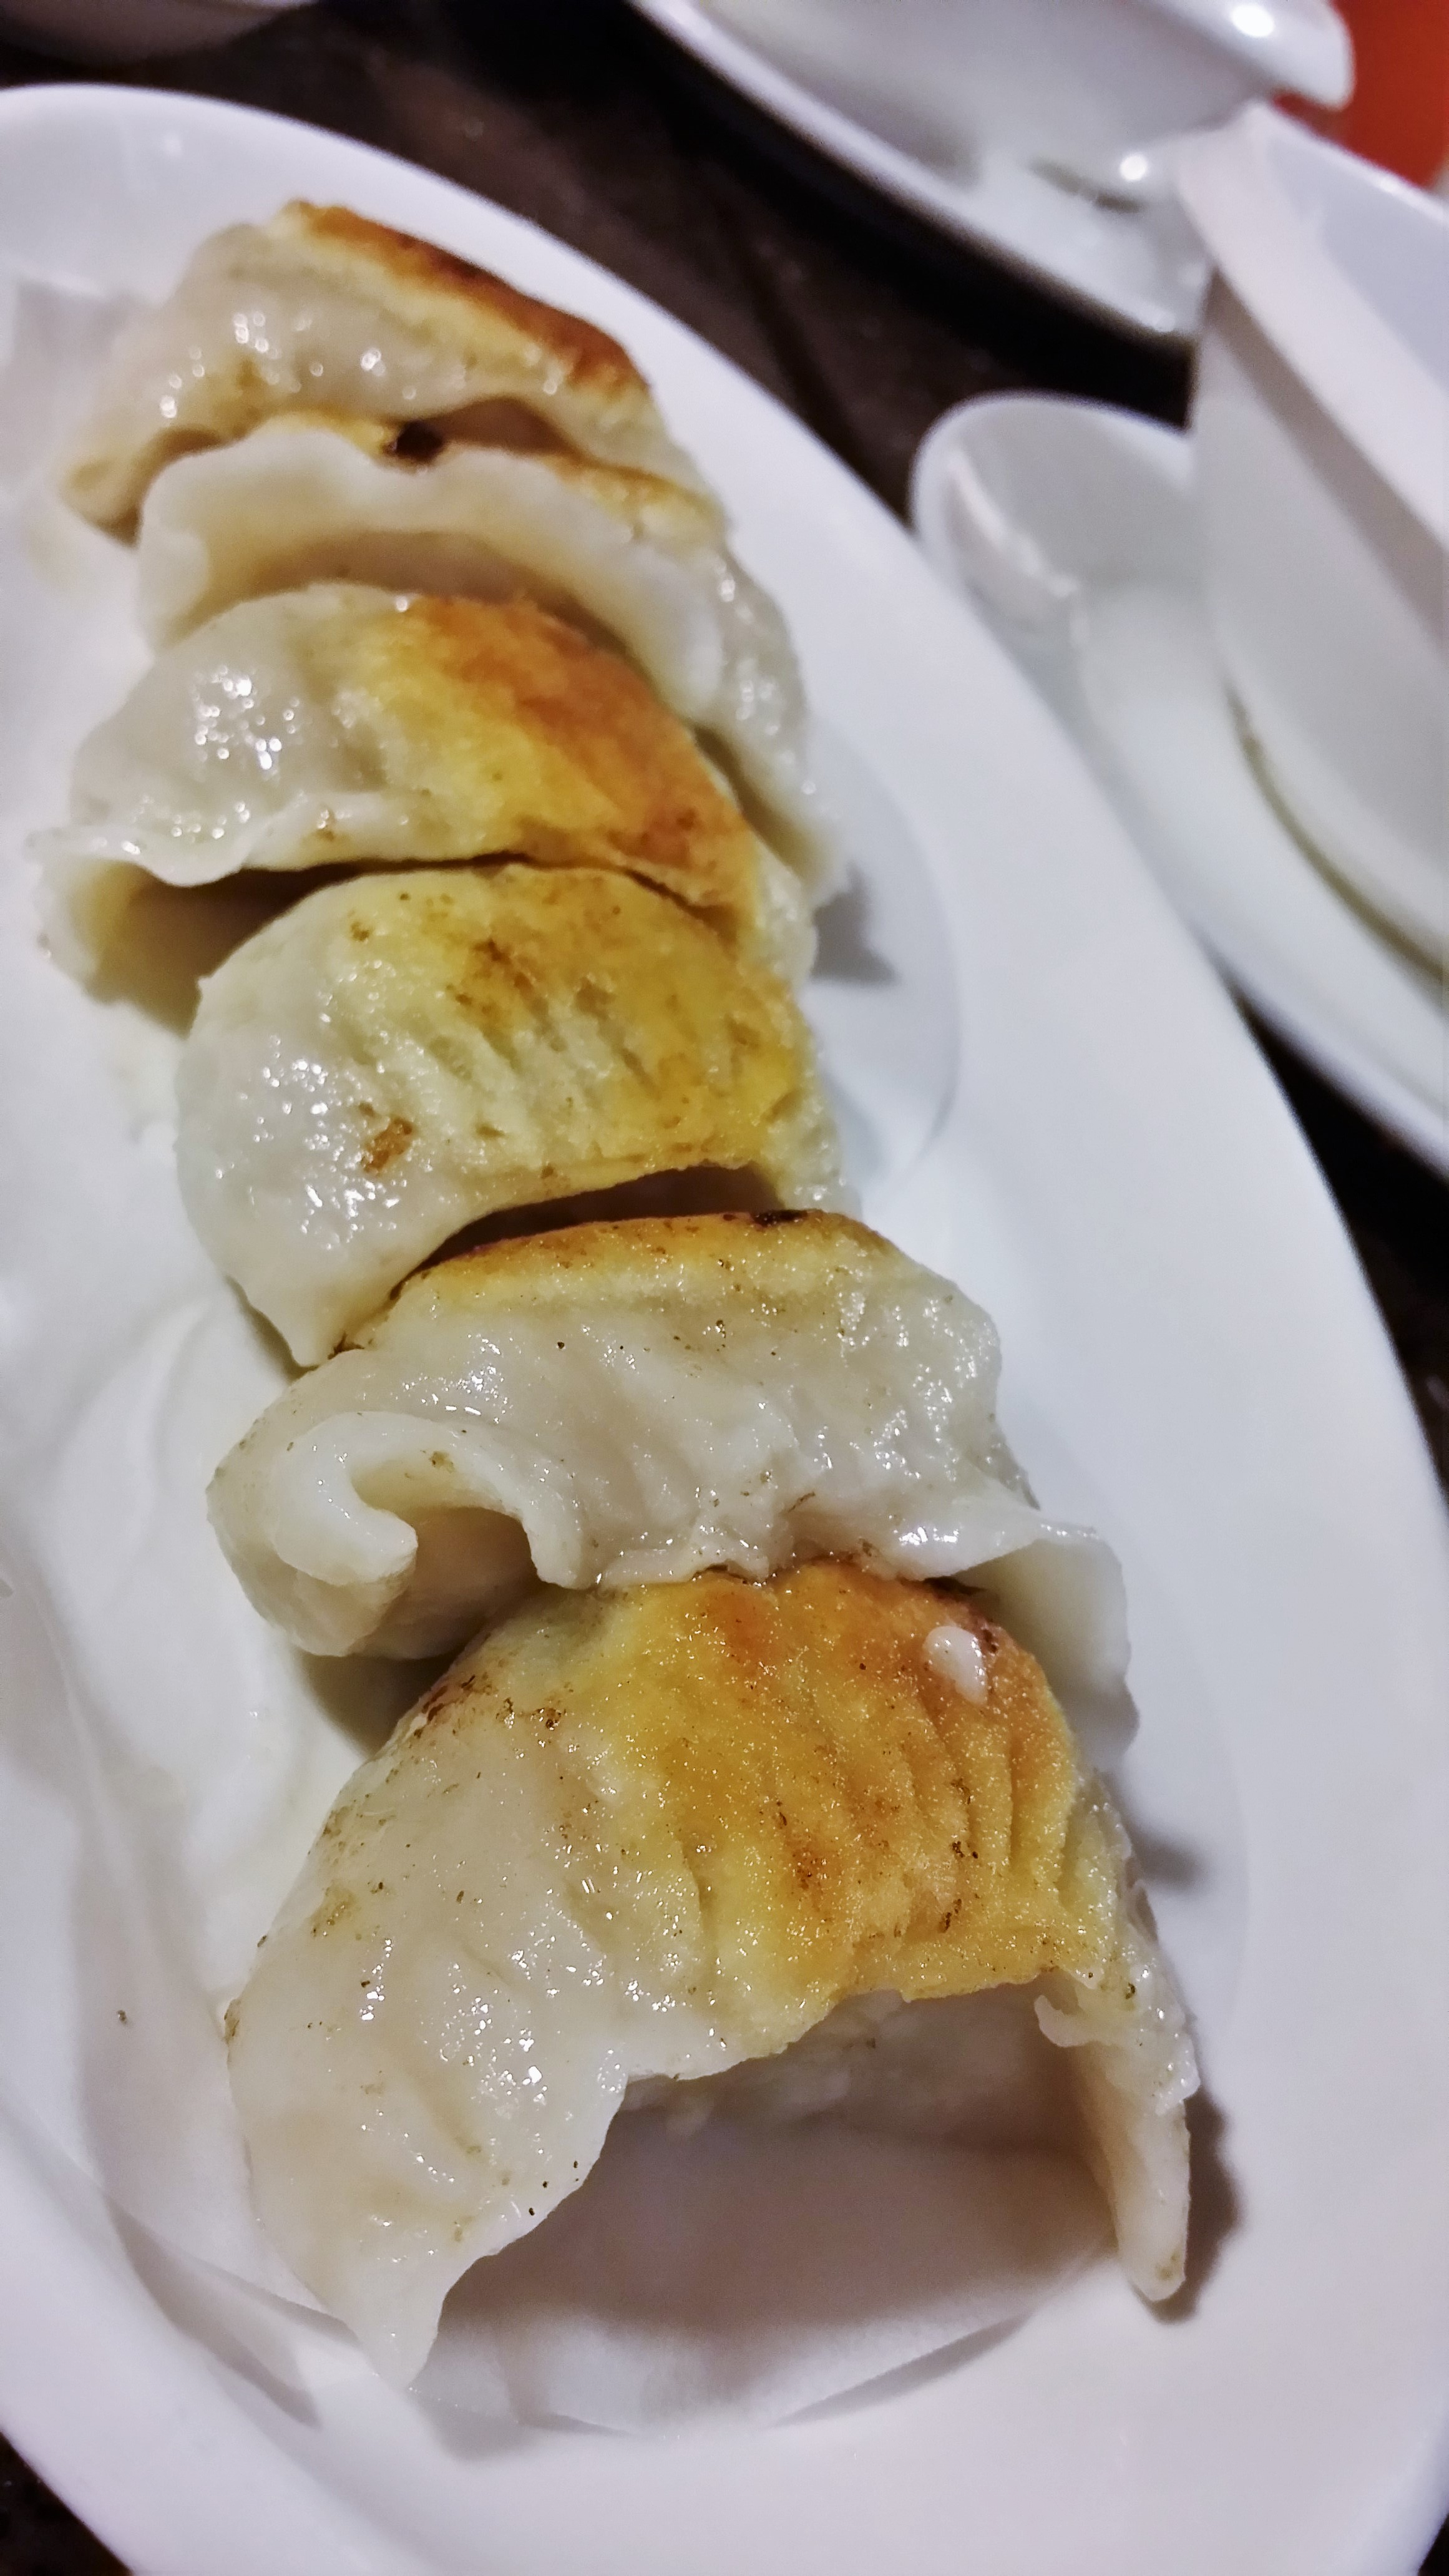 King Chef Dimsum Restaurant, Banawe Street, Where to eat in Quezon City, Where to eat Chinese dimsum in Manila, Where to eat cheap affordable dimsum promo, Zomato, Food Review